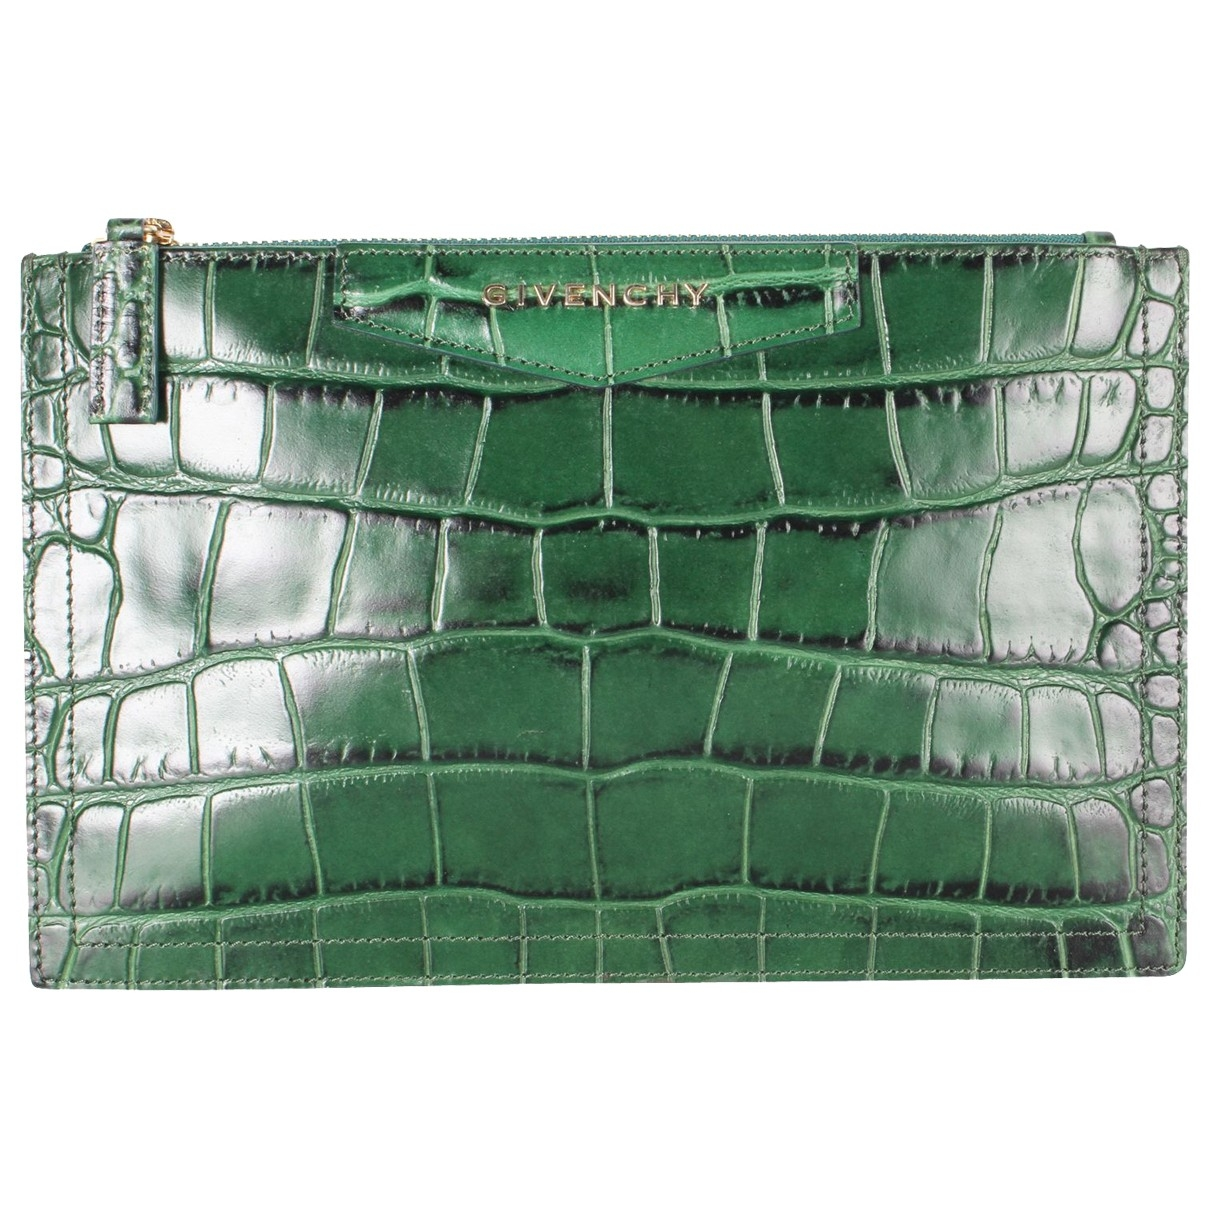 Givenchy \N Green Leather Clutch bag for Women \N